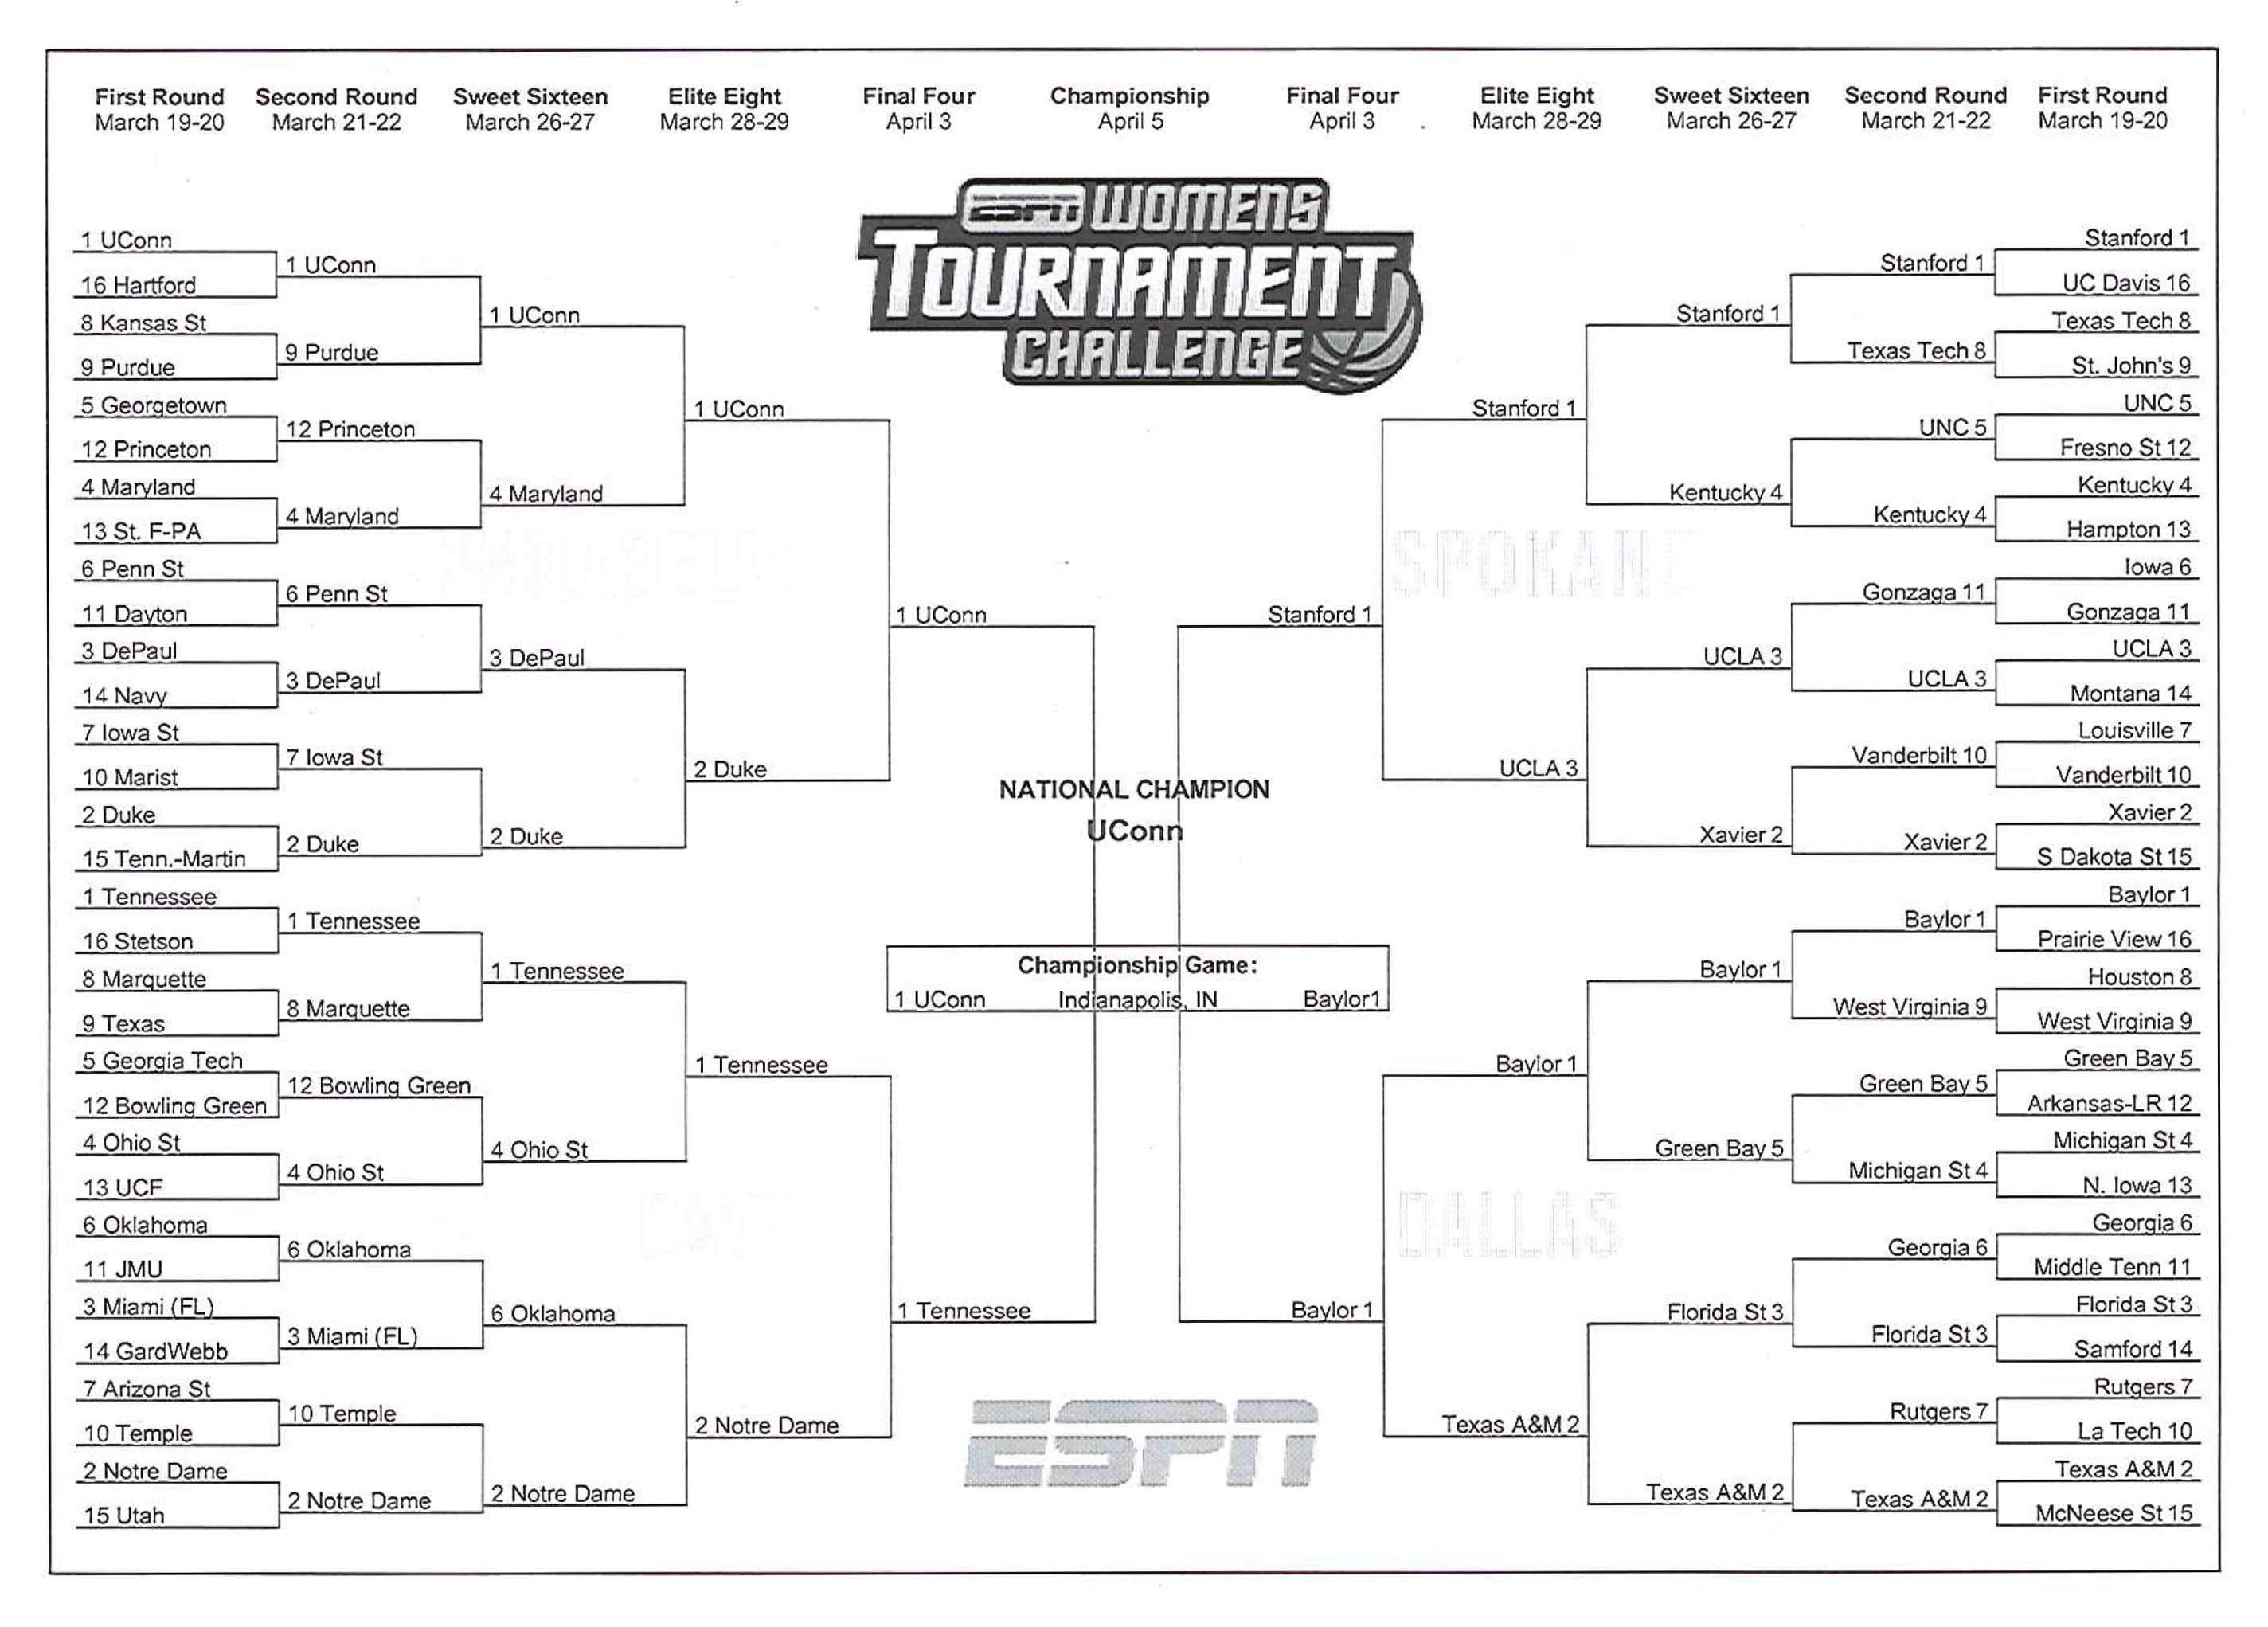 President Obama's 2011 Women's NCAA Basketball Tournament Brackets